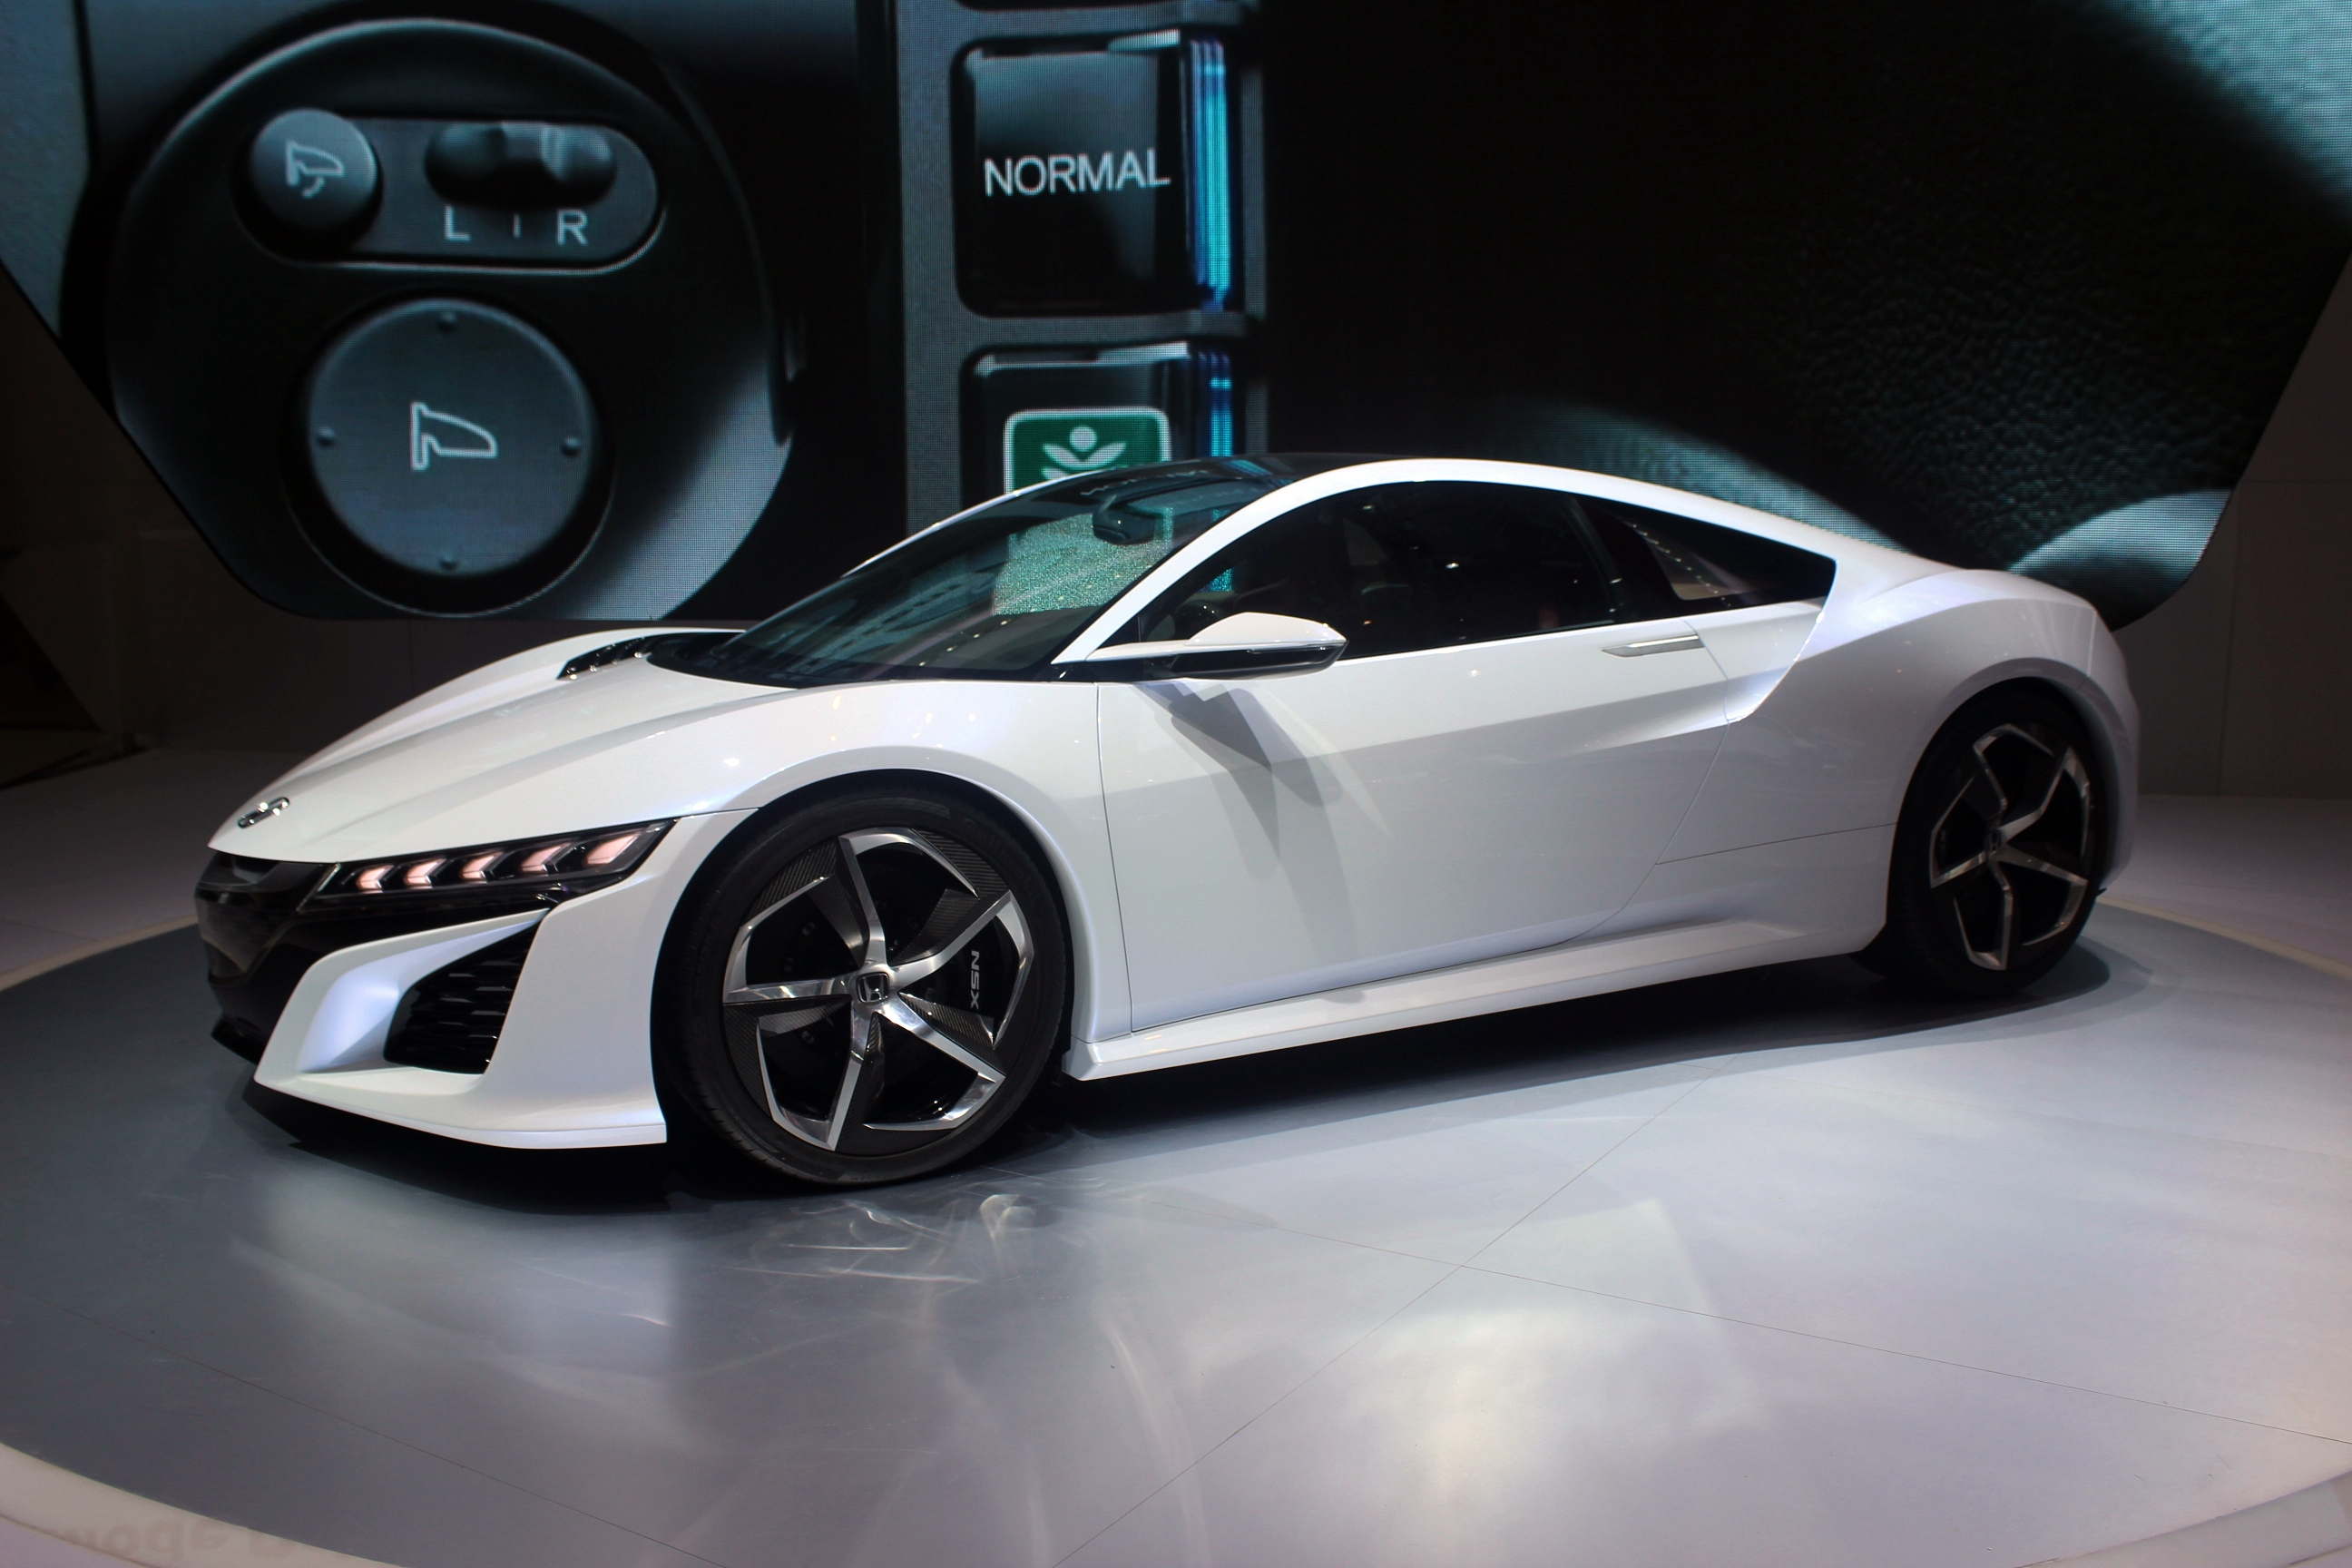 Honda NSX Concept At The 2014 Indonesia International Motor Show